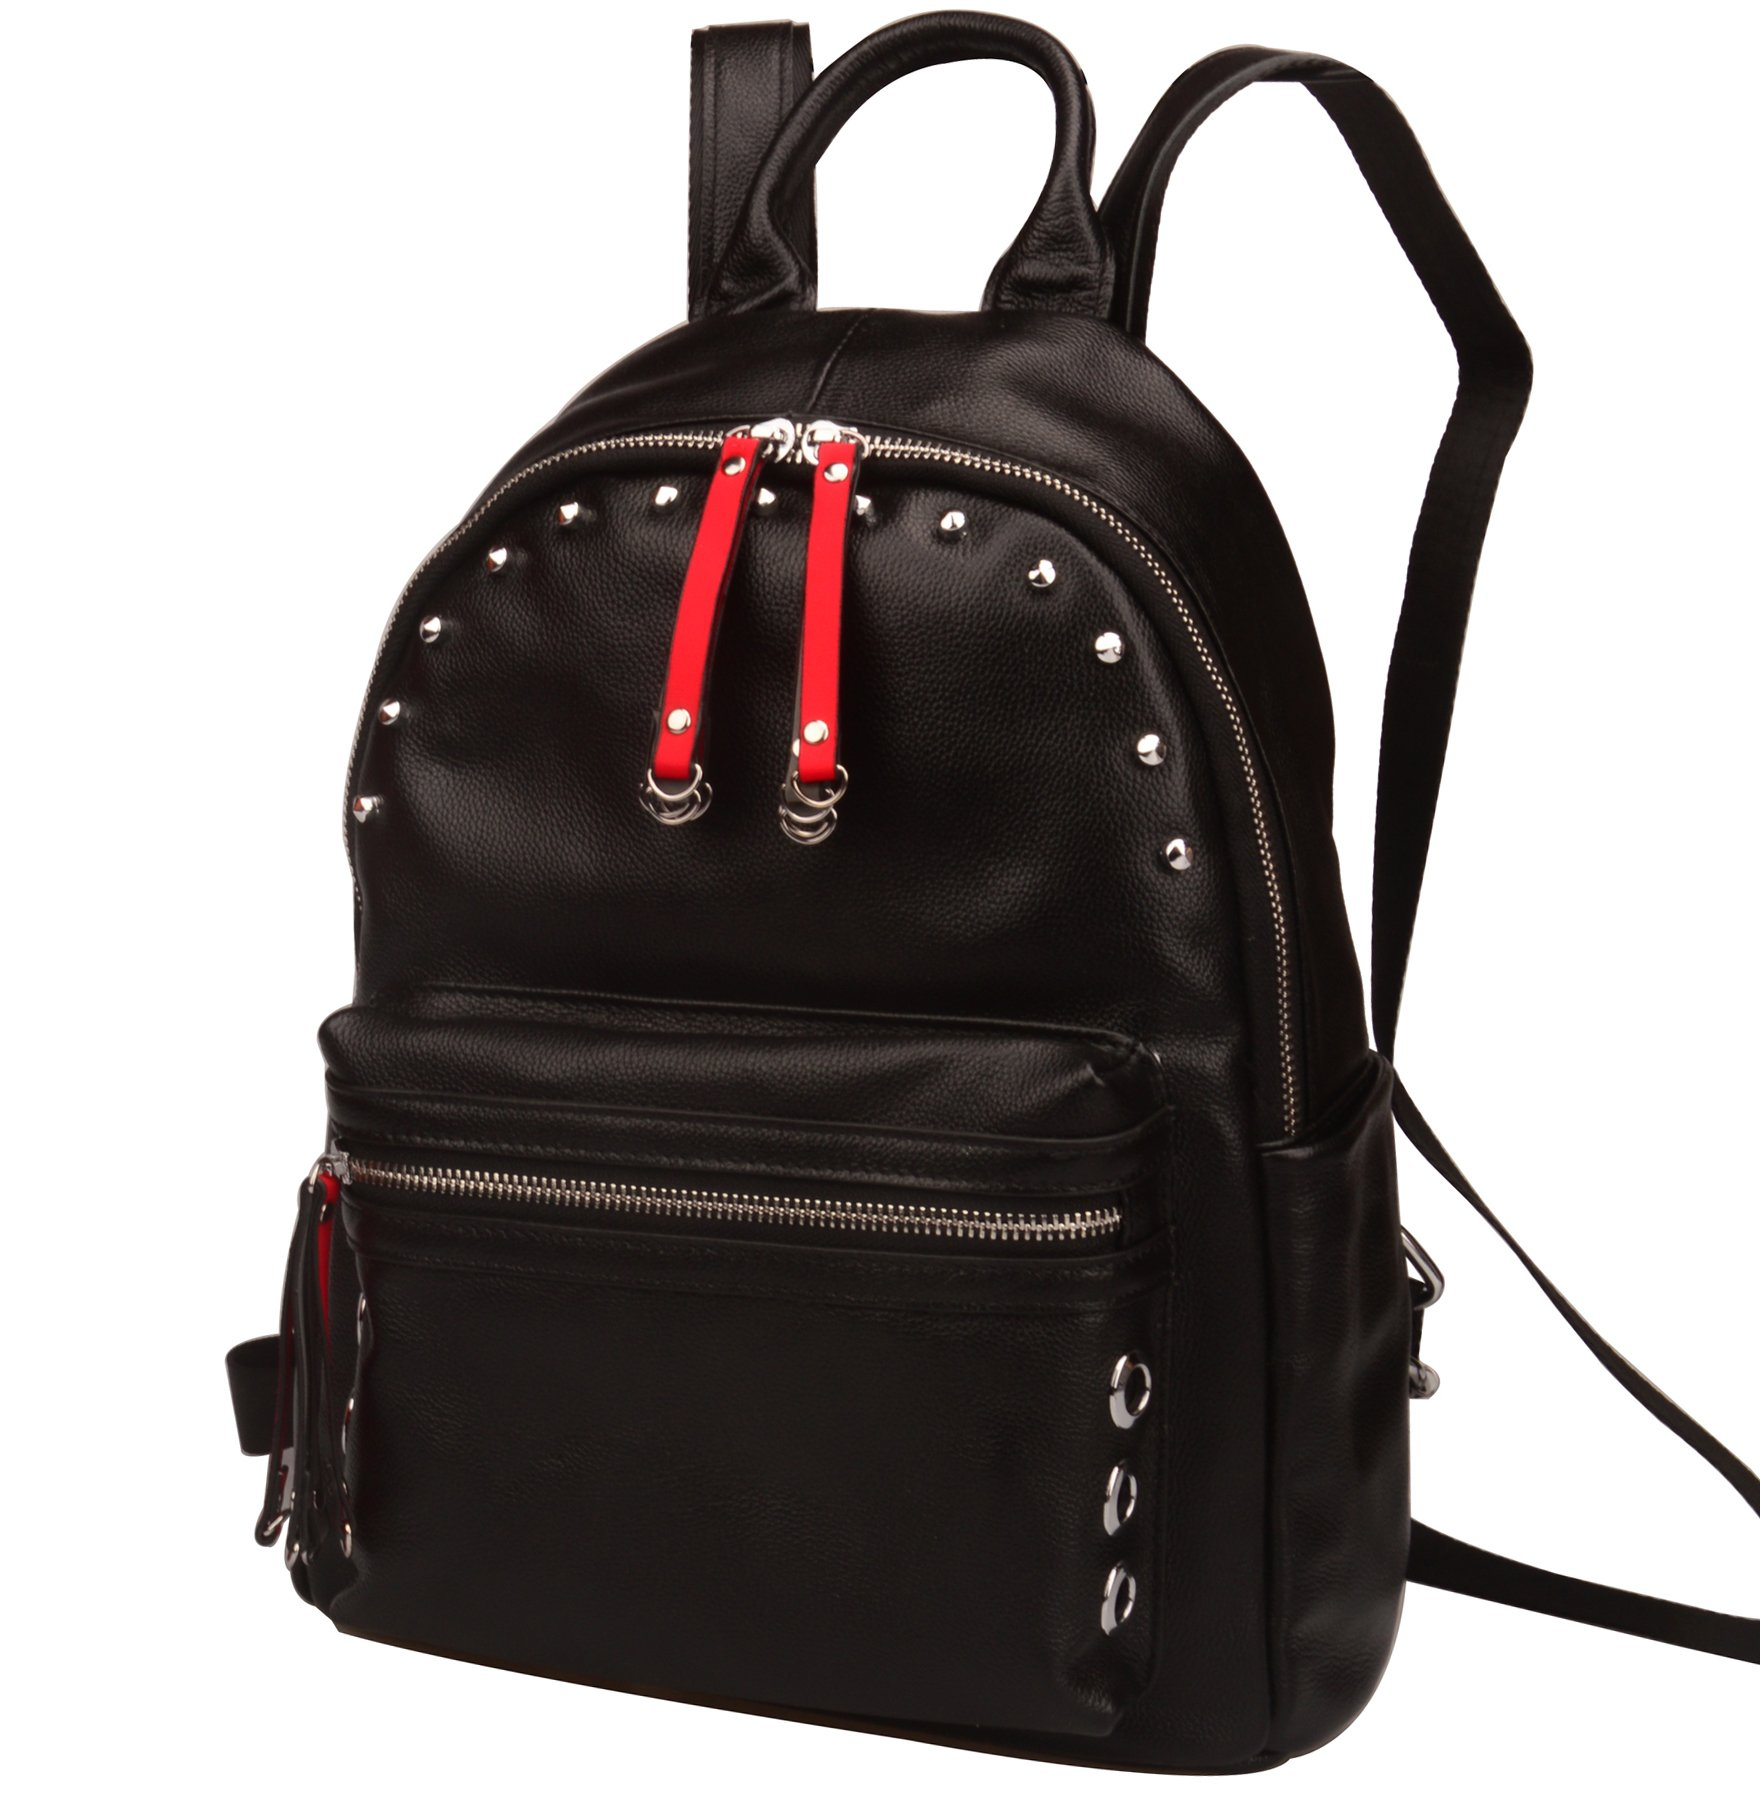 Fiswiss Women's Genuine Leather Fashion Backpack Everyday Purse (Black)